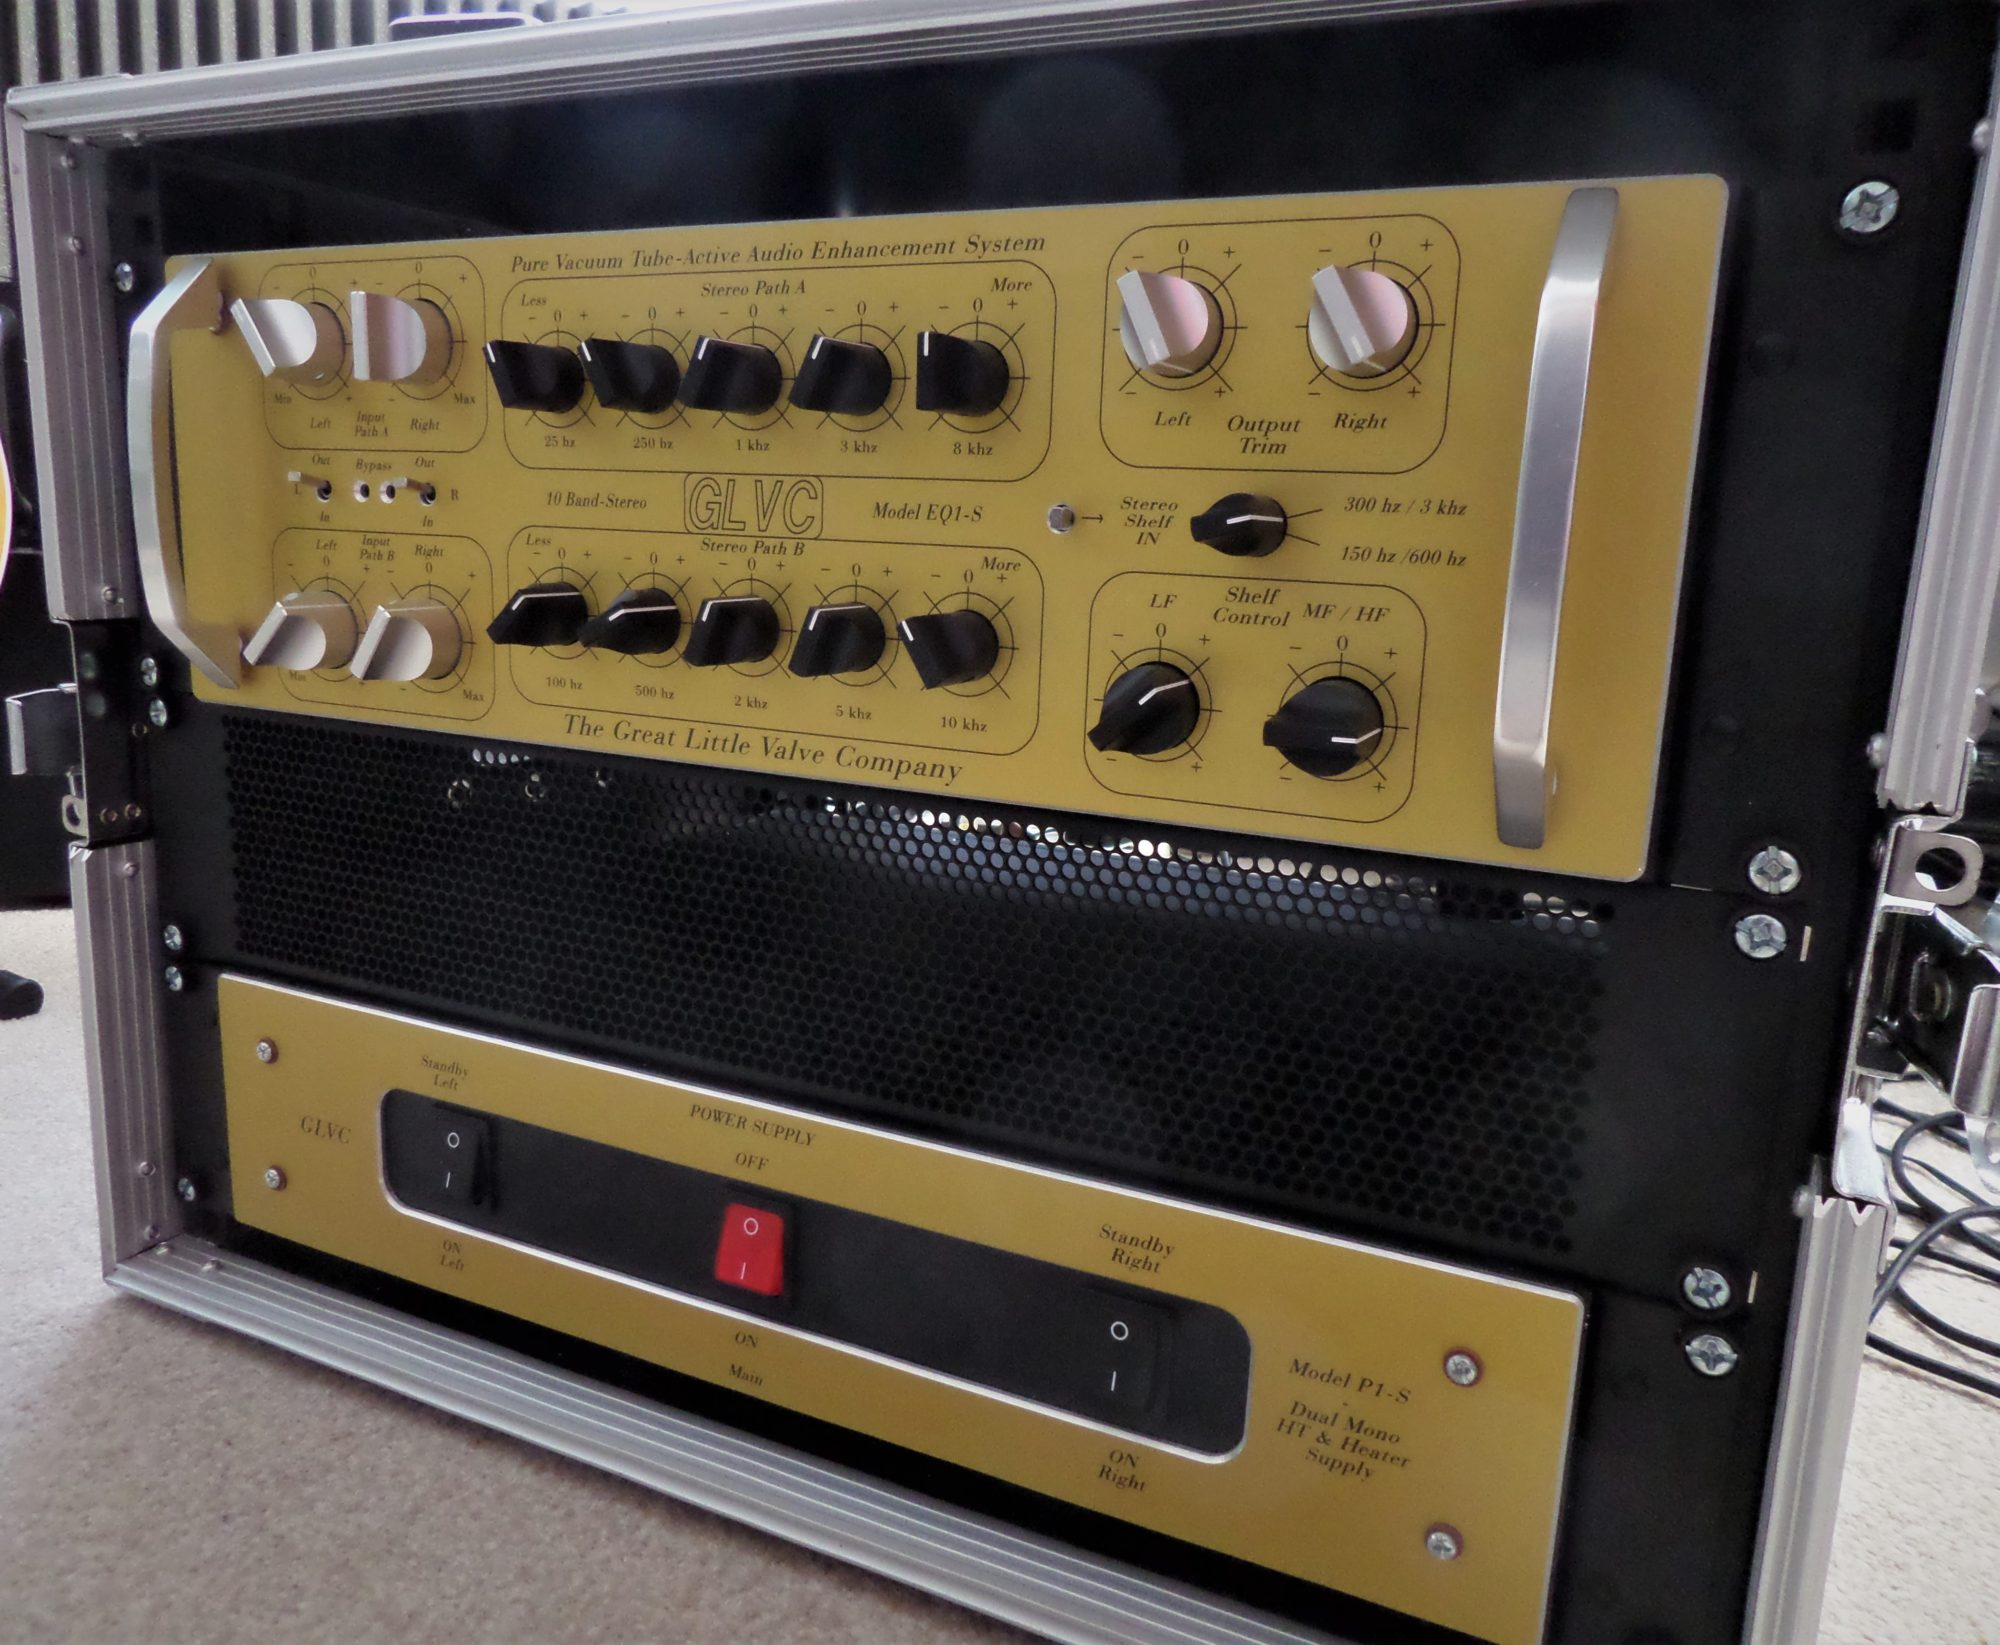 The ultimate analogue vacuum tube tone control system